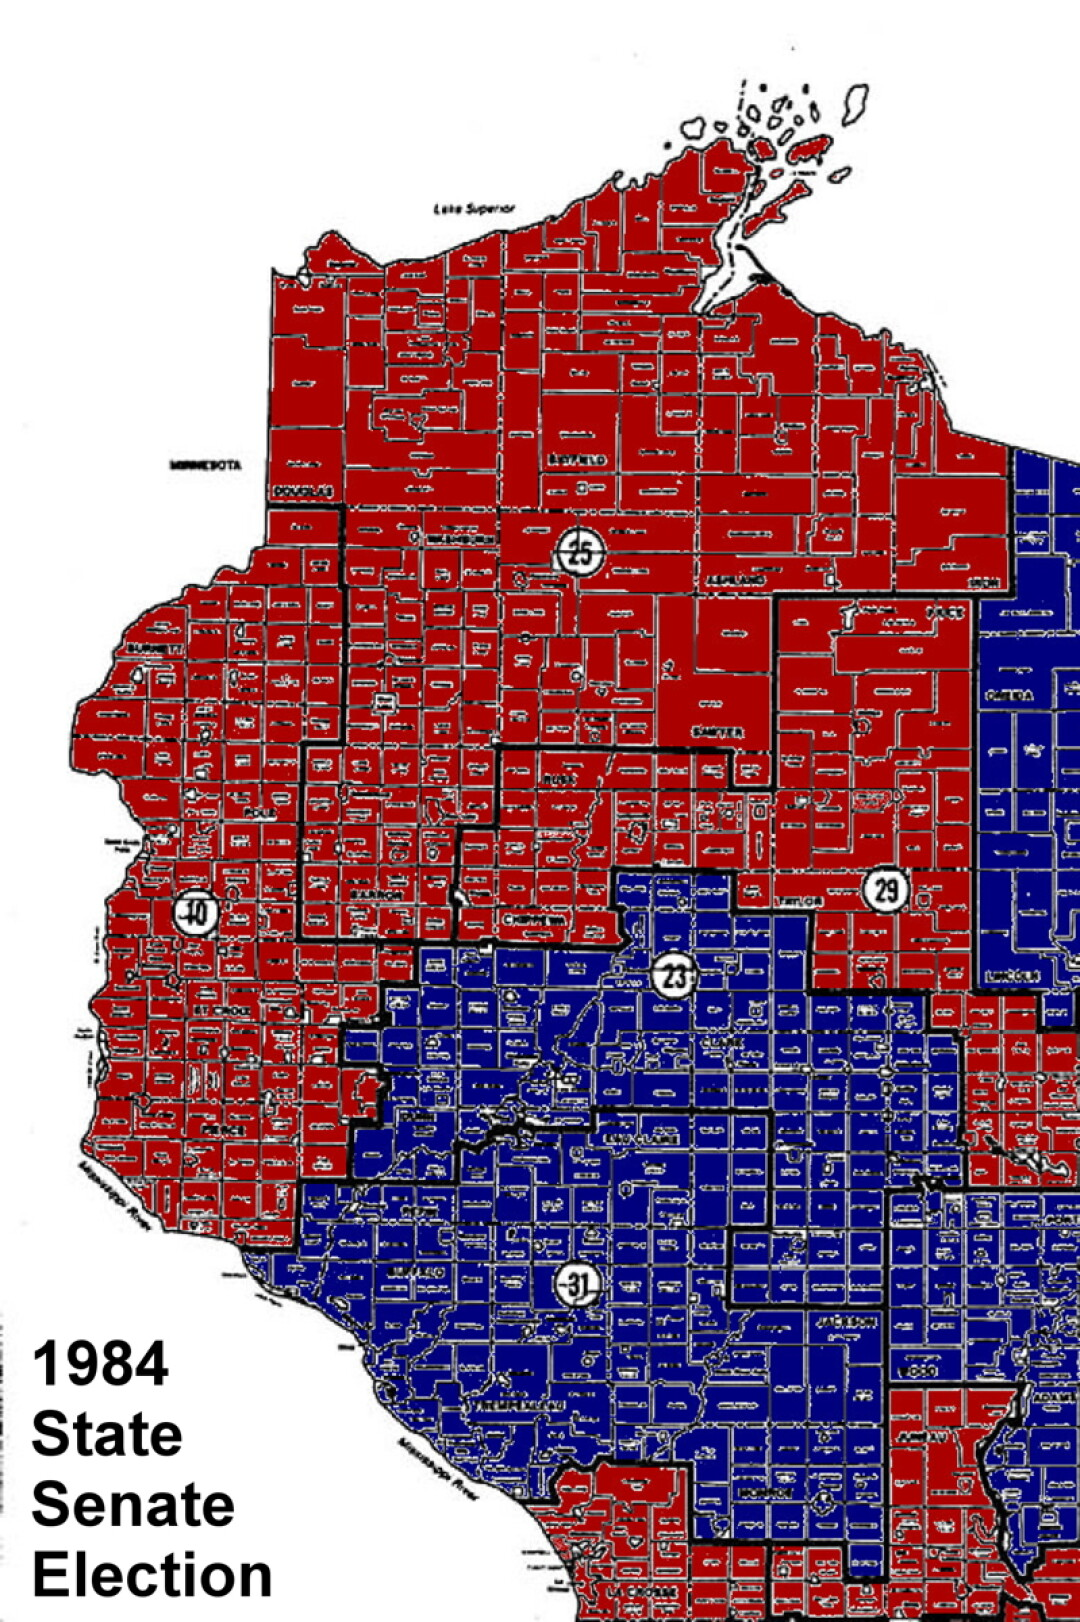 2010 United States Senate election in Wisconsin